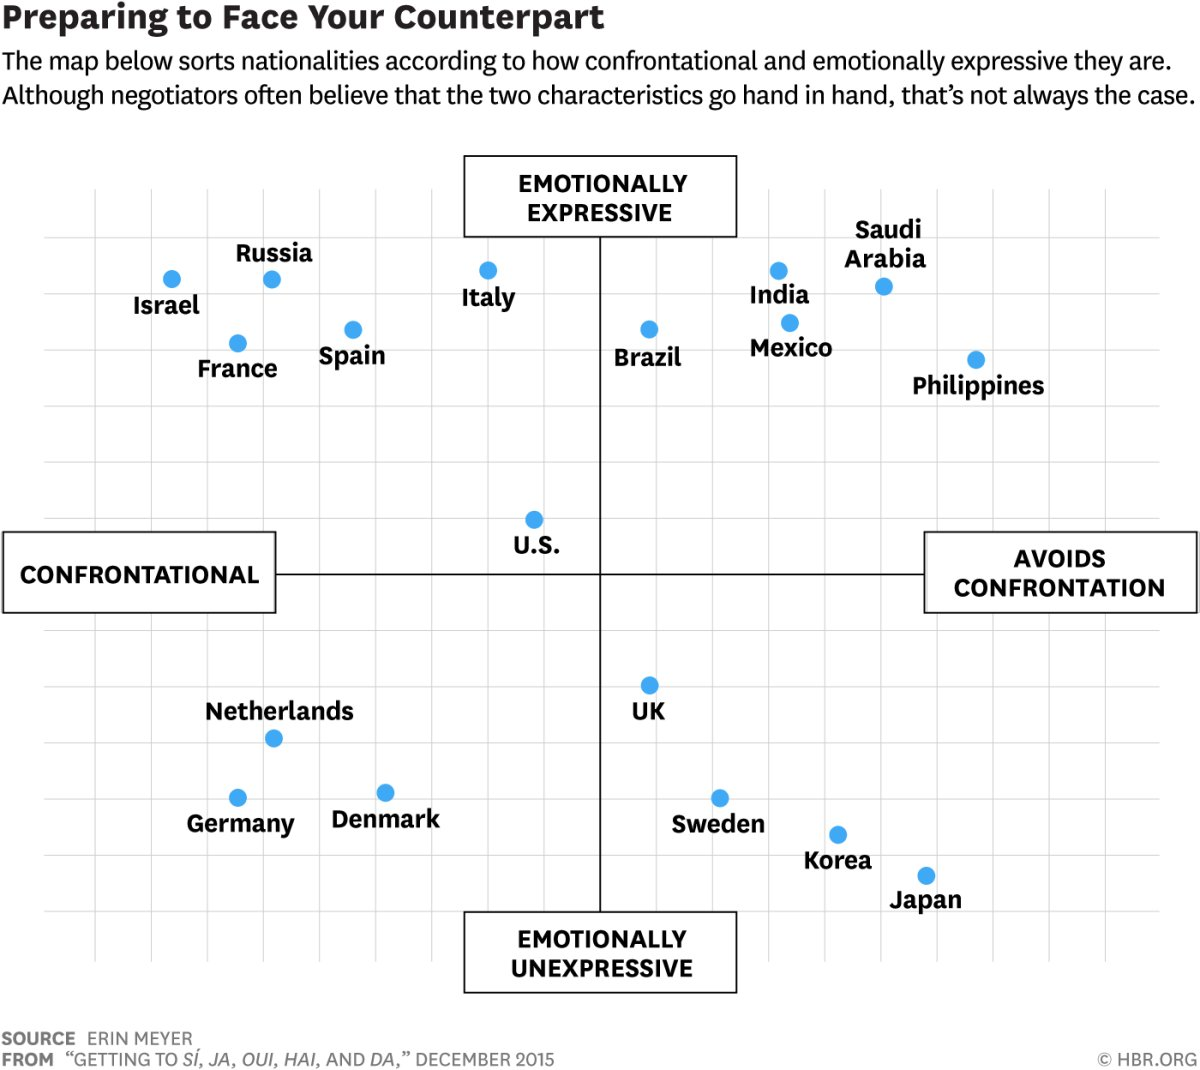 Negotiations and emotional confrontation across different cultures https://t.co/DdmibNc931 https://t.co/uFv5RpWnWM